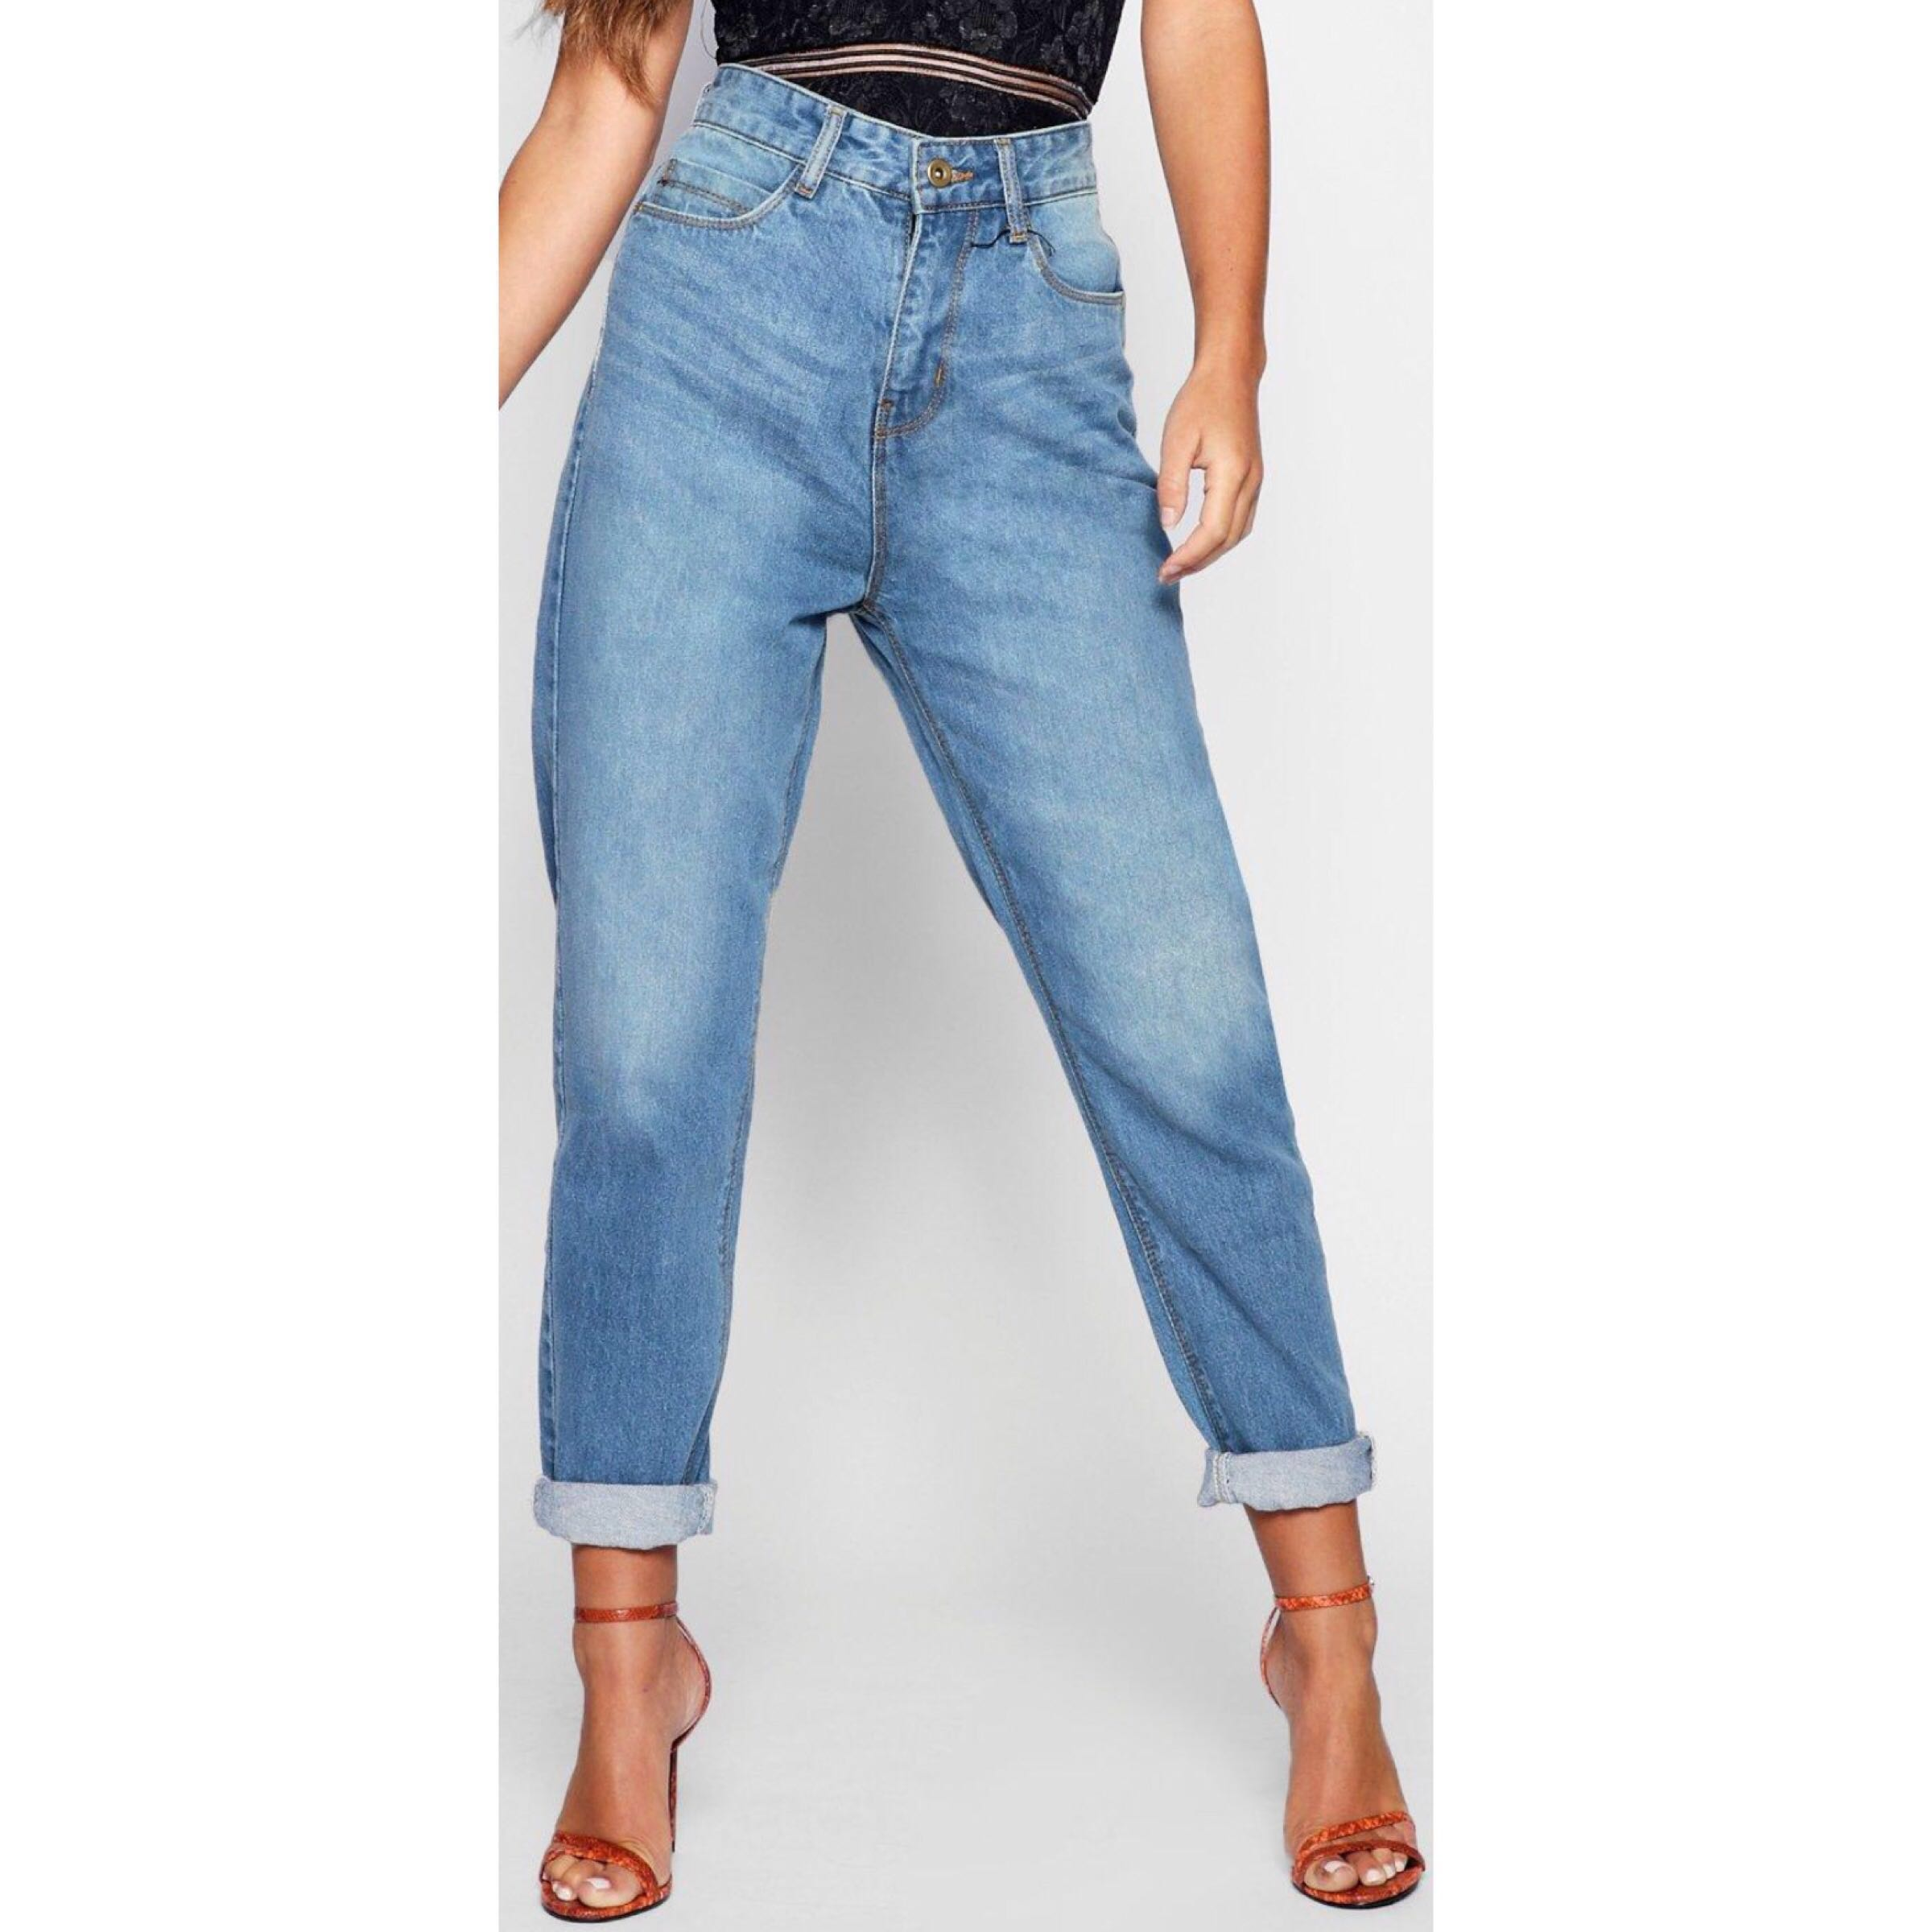 d7cf4b8be2ea BooHoo Ultra High Waisted Mom Jeans, Women's Fashion, Clothes, Pants ...